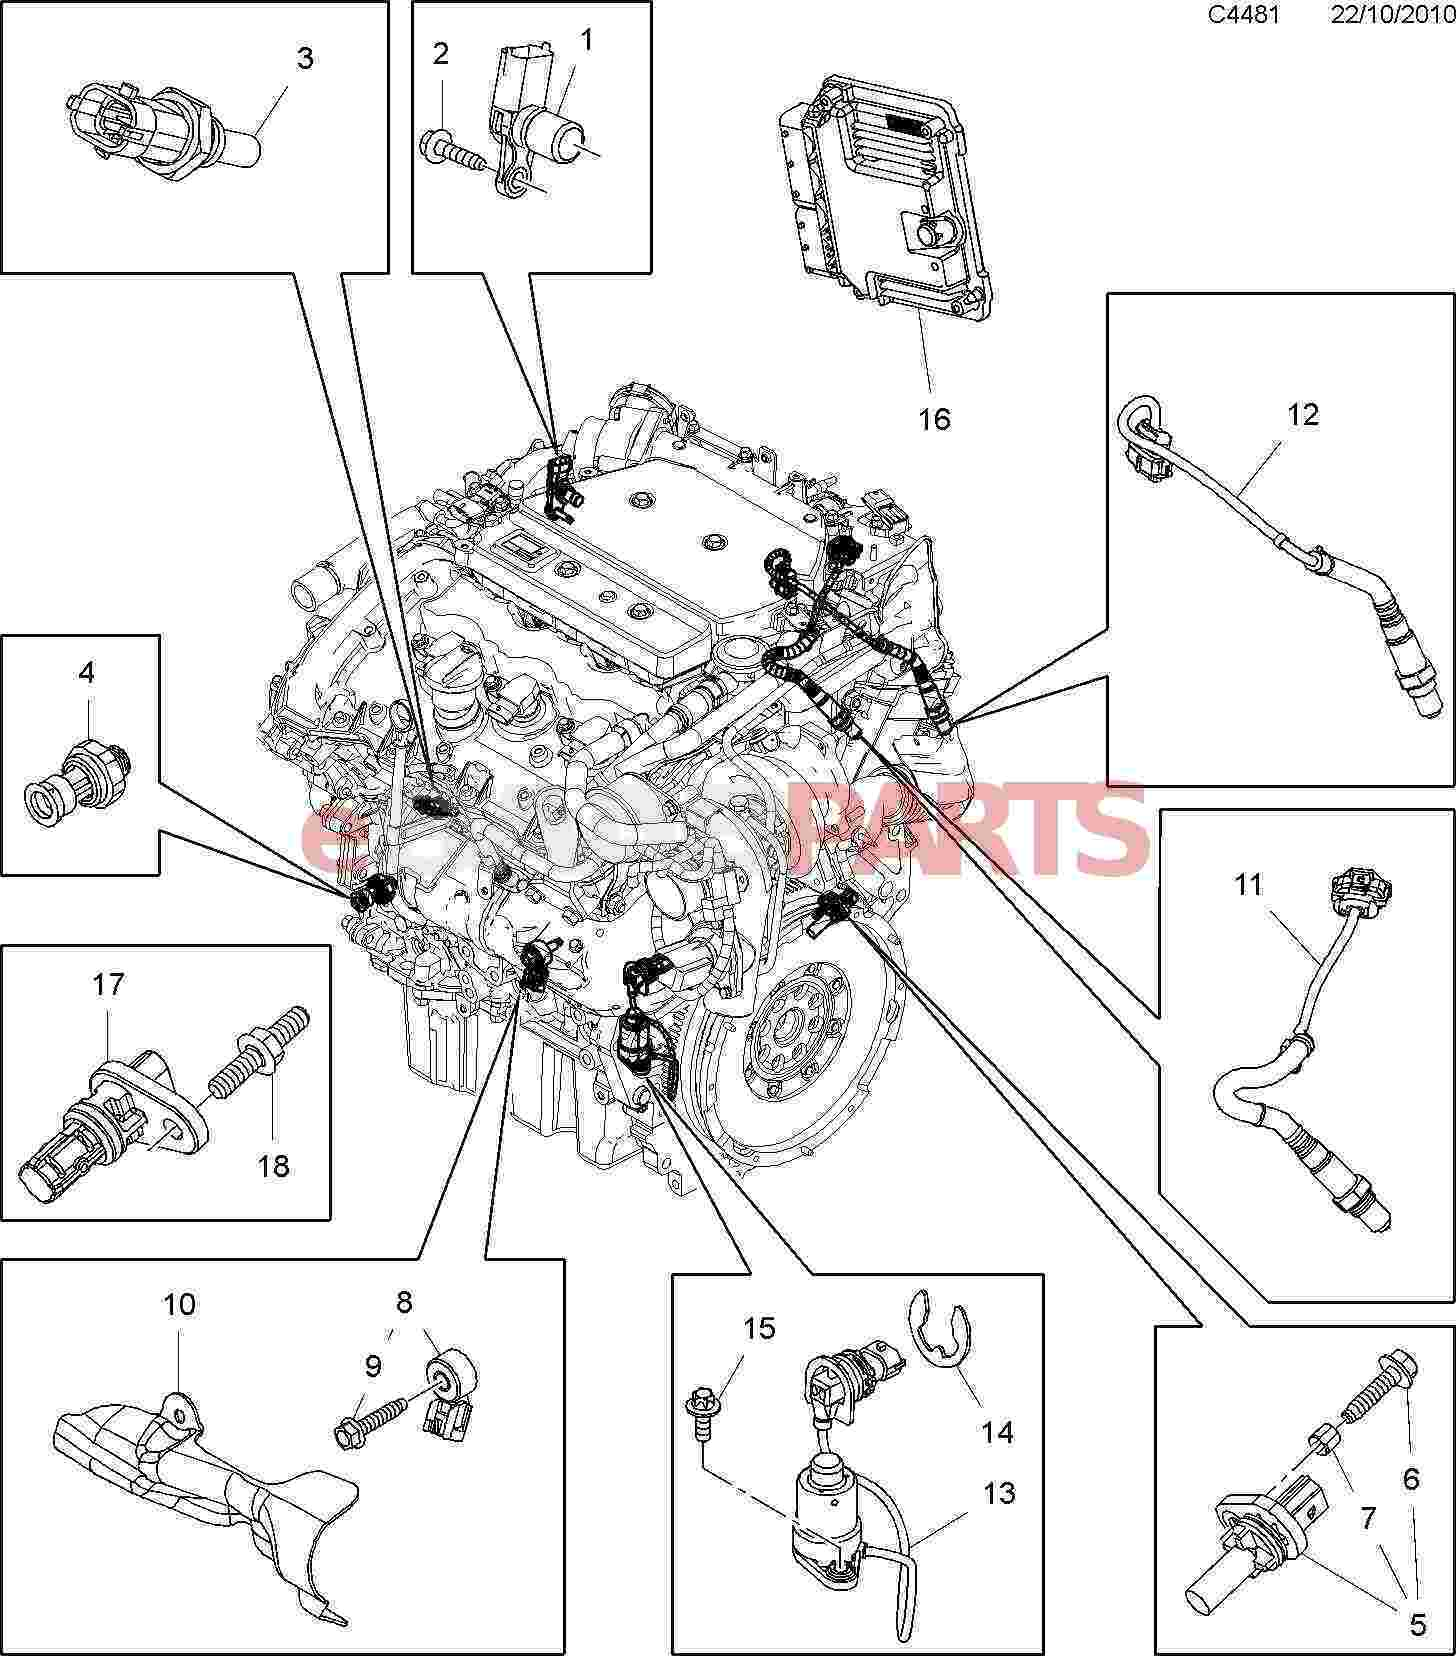 Saab 9 3 Turbo Engine Diagram on saab 9 3 wiring diagram